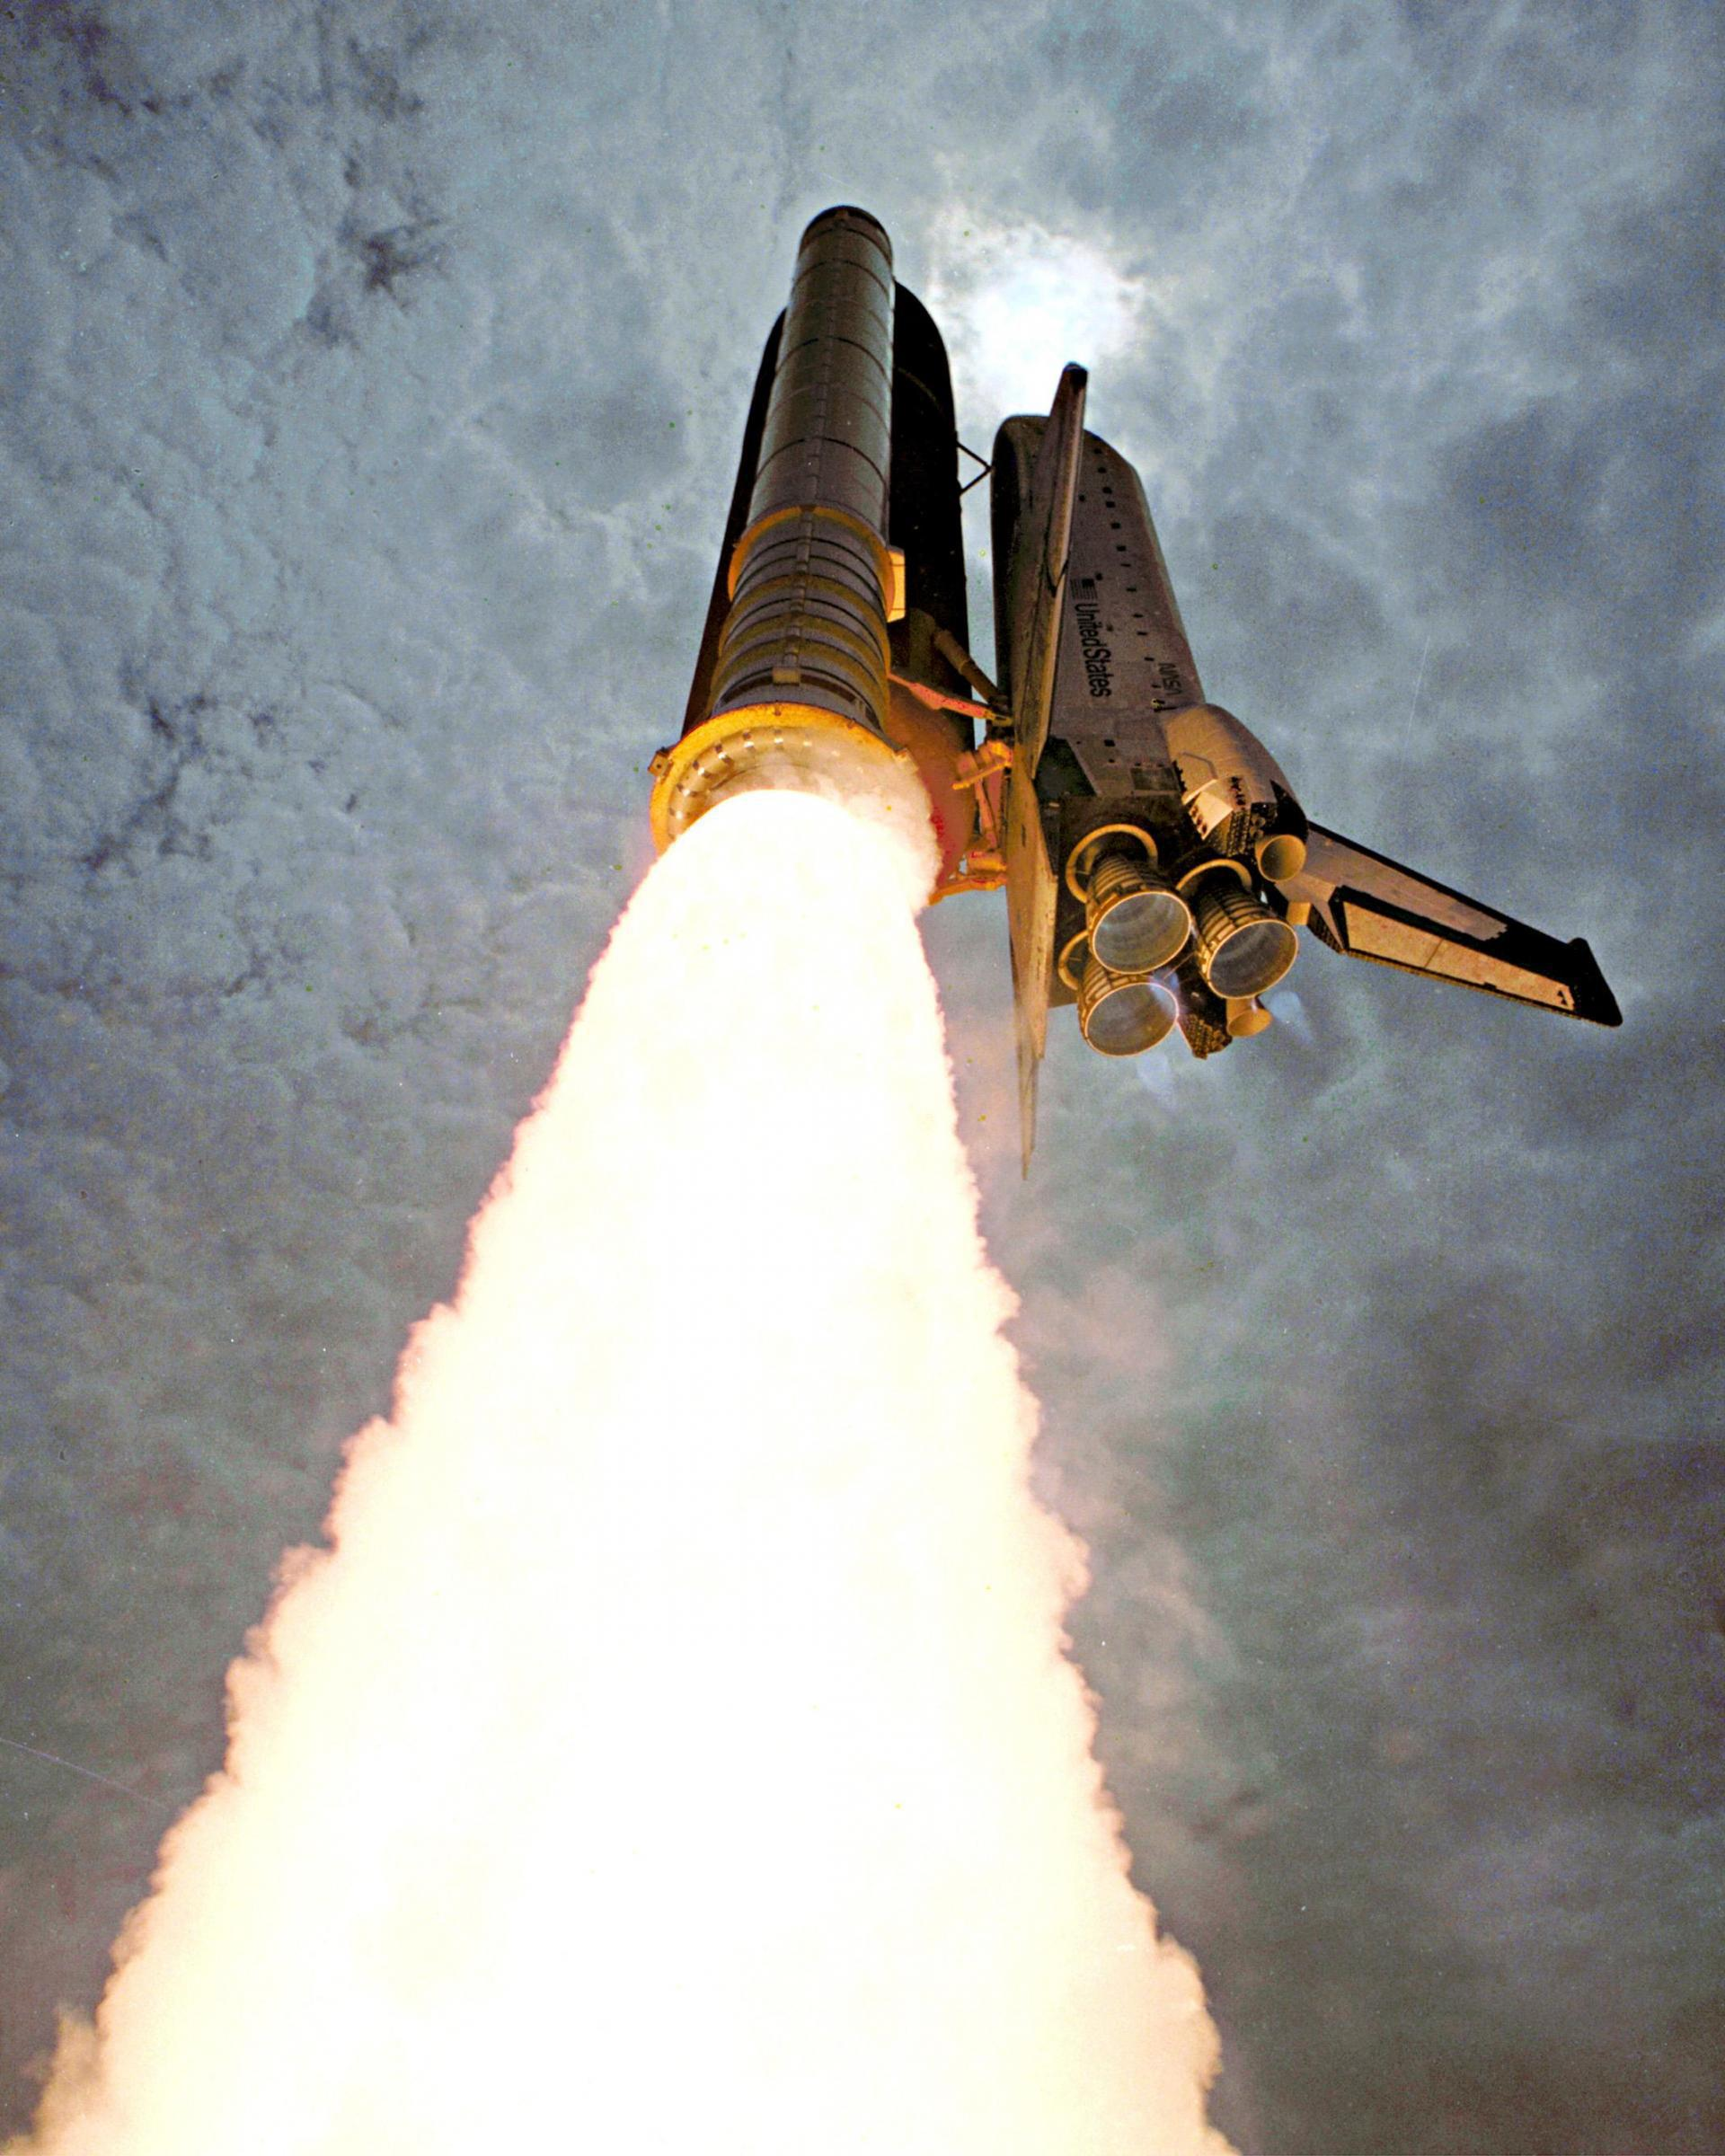 Space Shuttle Columbia / OV-102 | STS-62